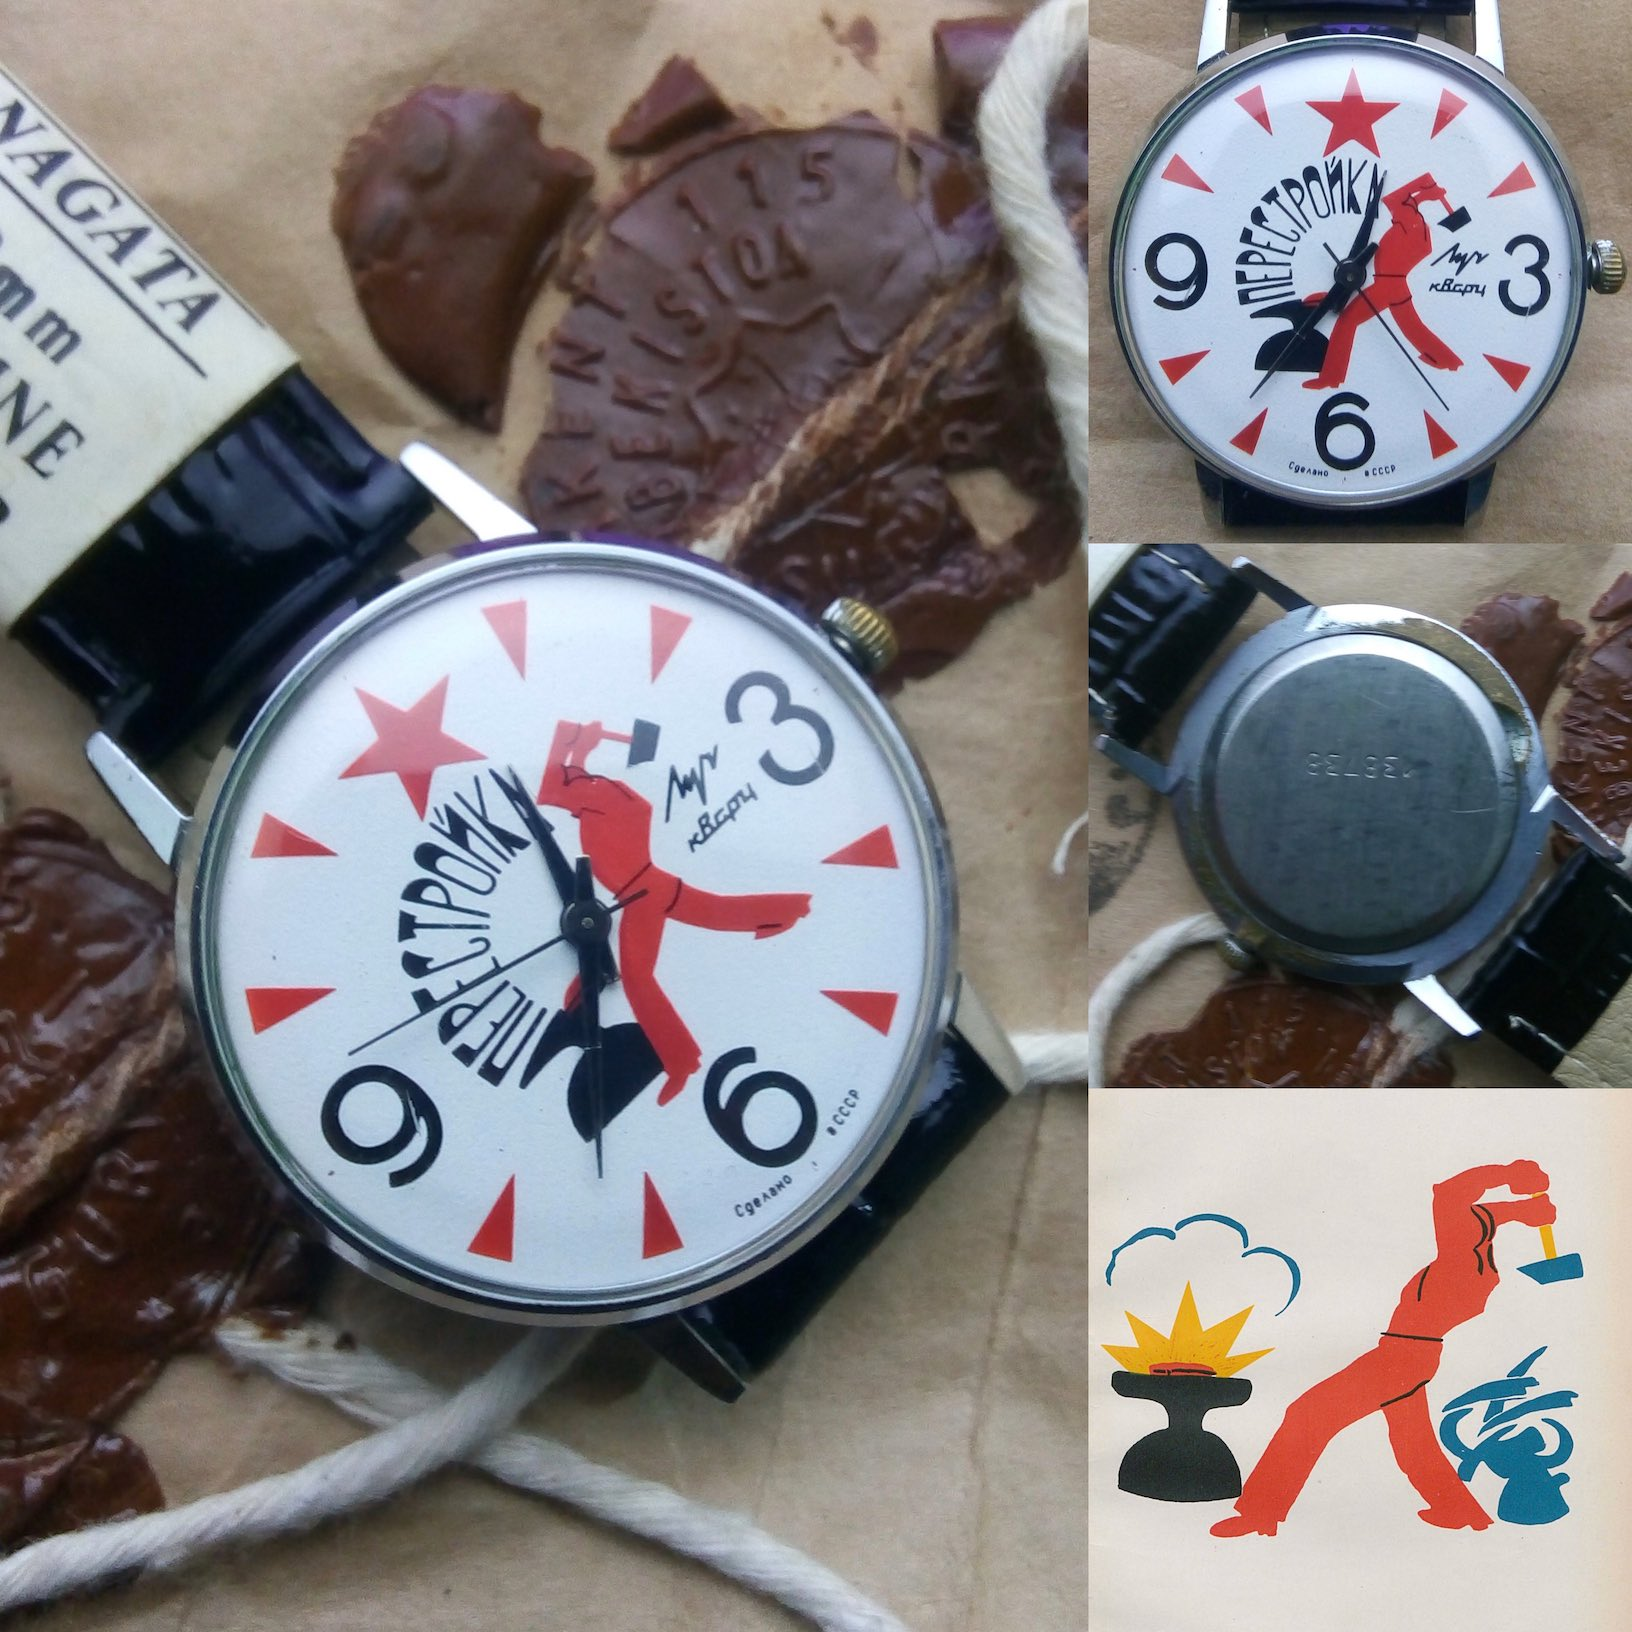 Name:  Gollage Luch quartz watch with Perestroika dial 3rd watch.jpg